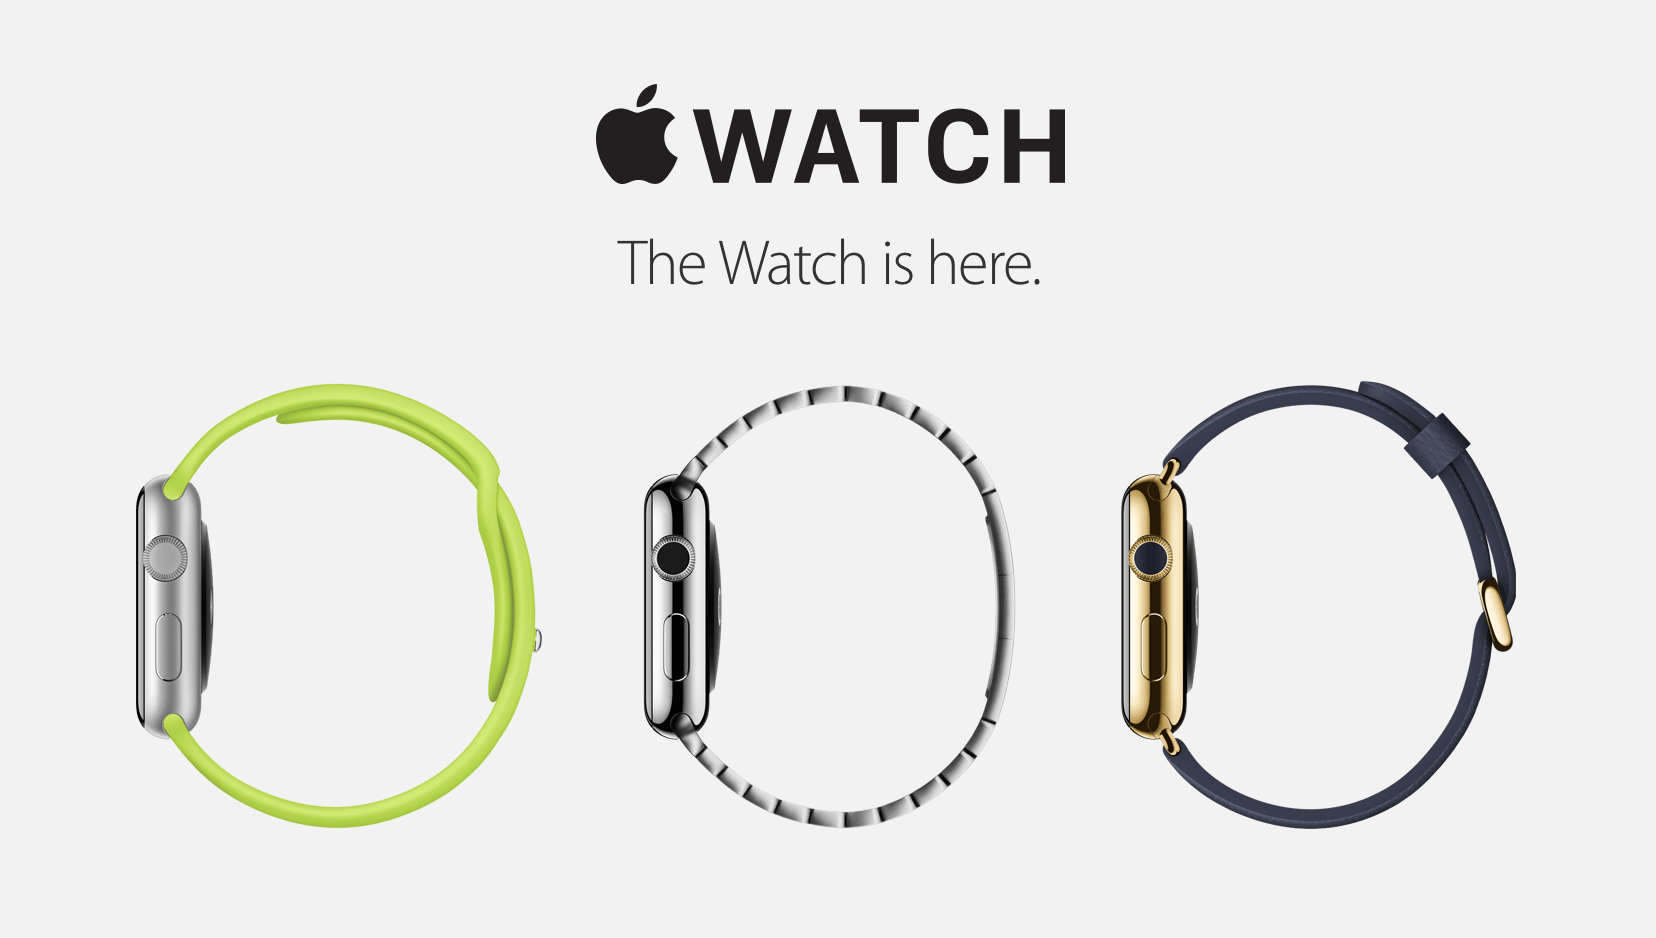 IDC estimates Q2 2015 Apple Watch sales of 3.6 million